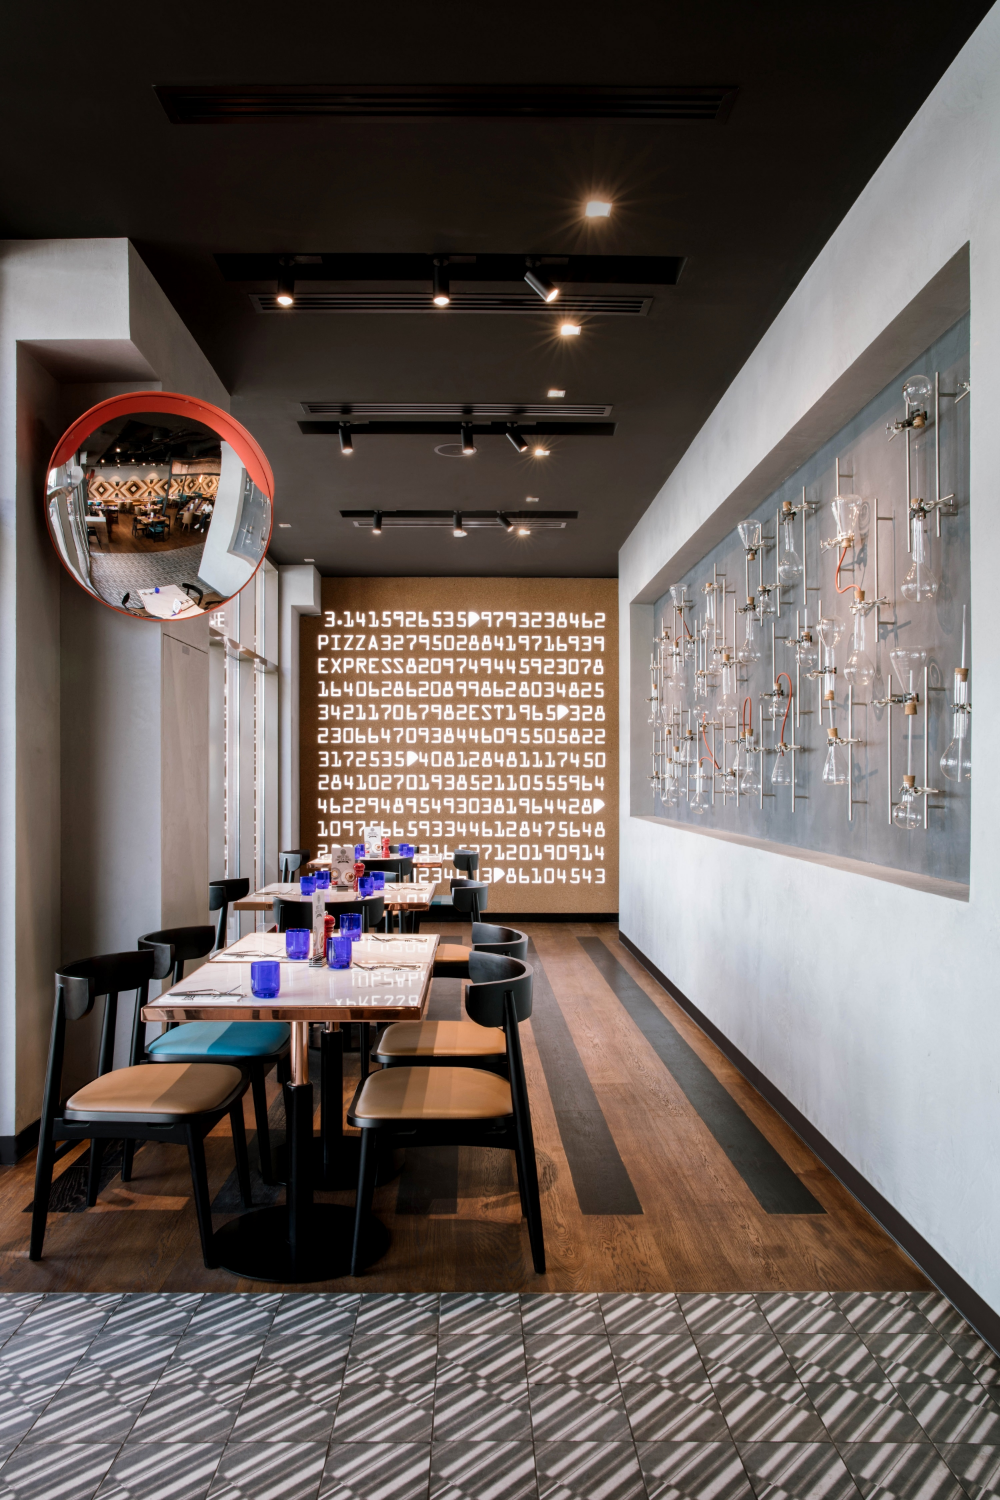 H2r Designs Education Themed Pizza Express In Sharjah S University